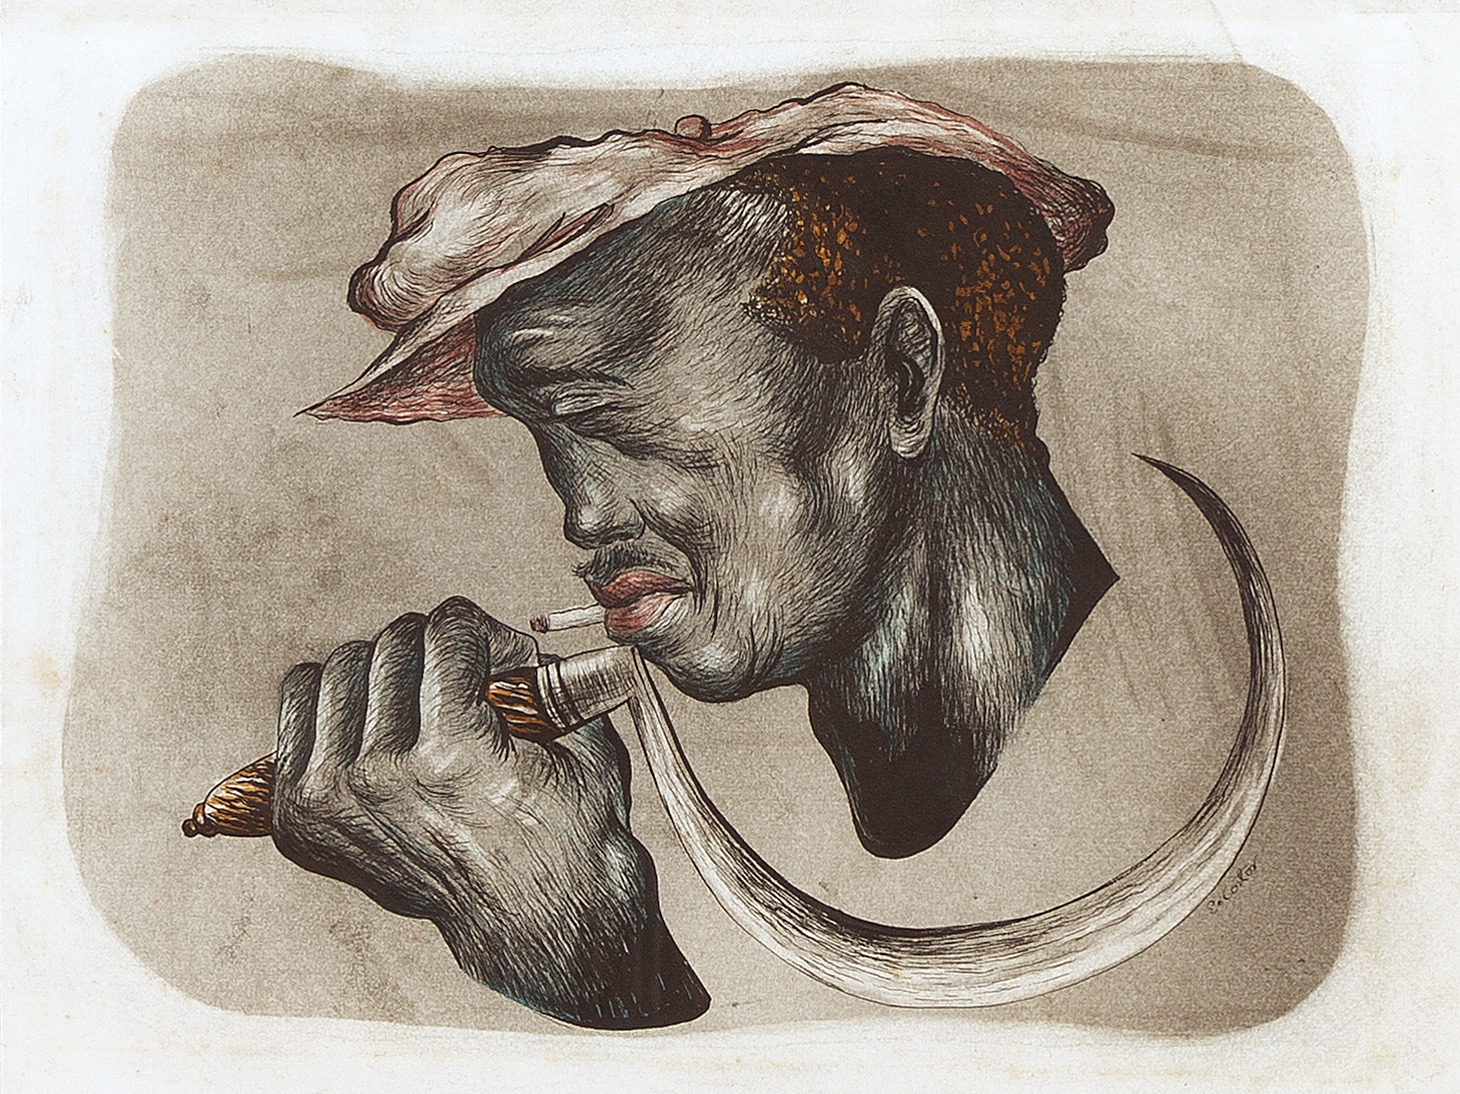 etching of man smoking